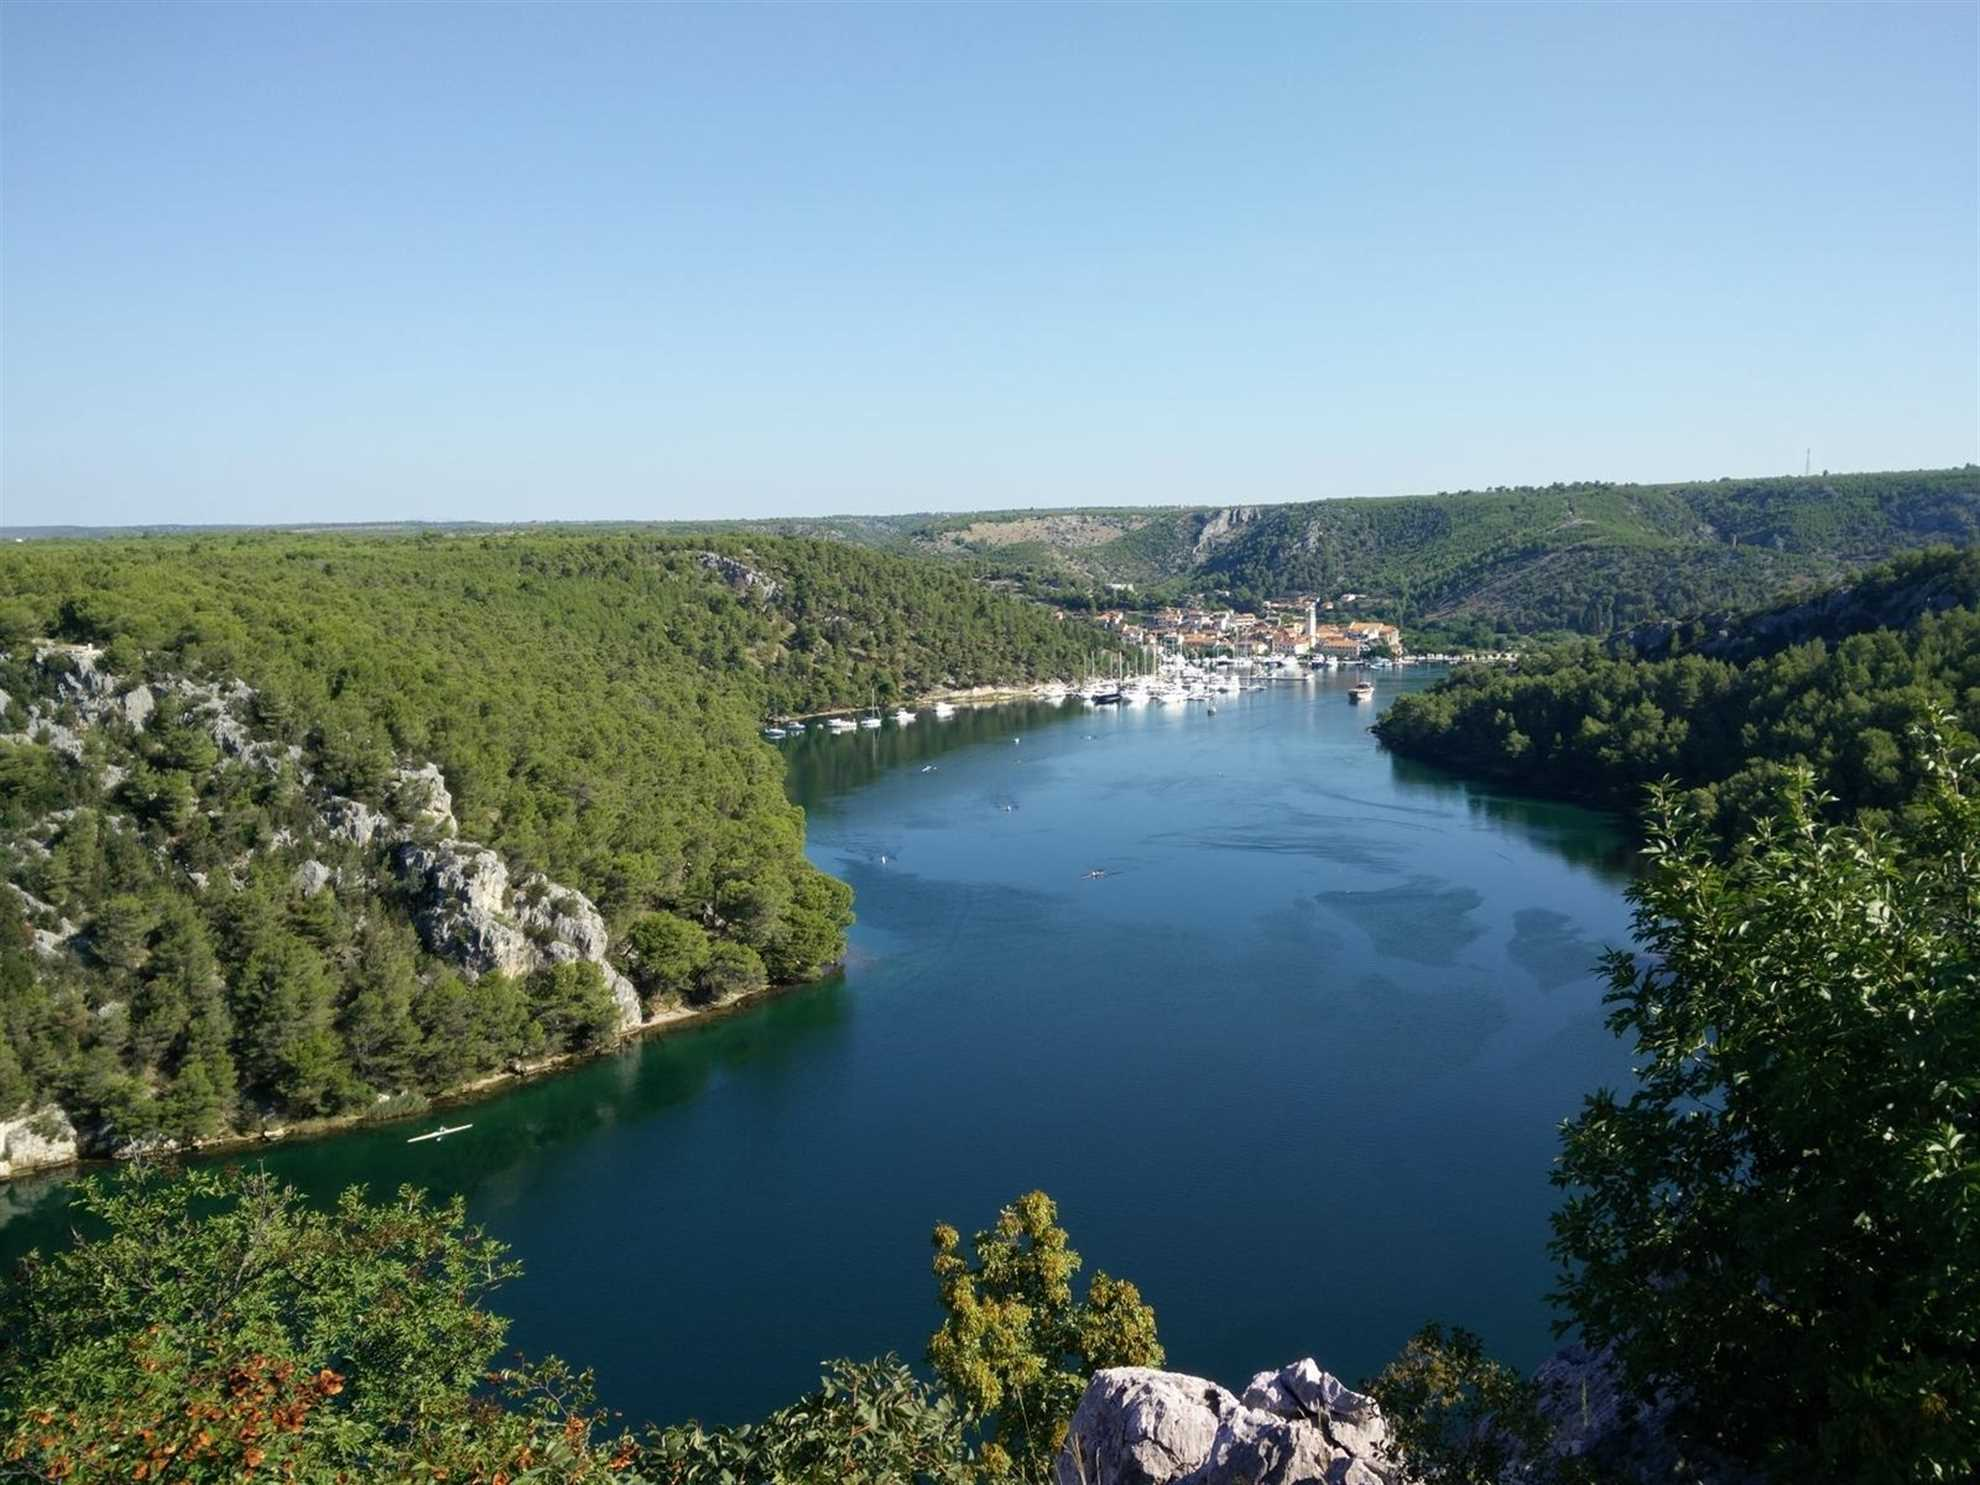 Skradin, small town at the mouth of Krka River